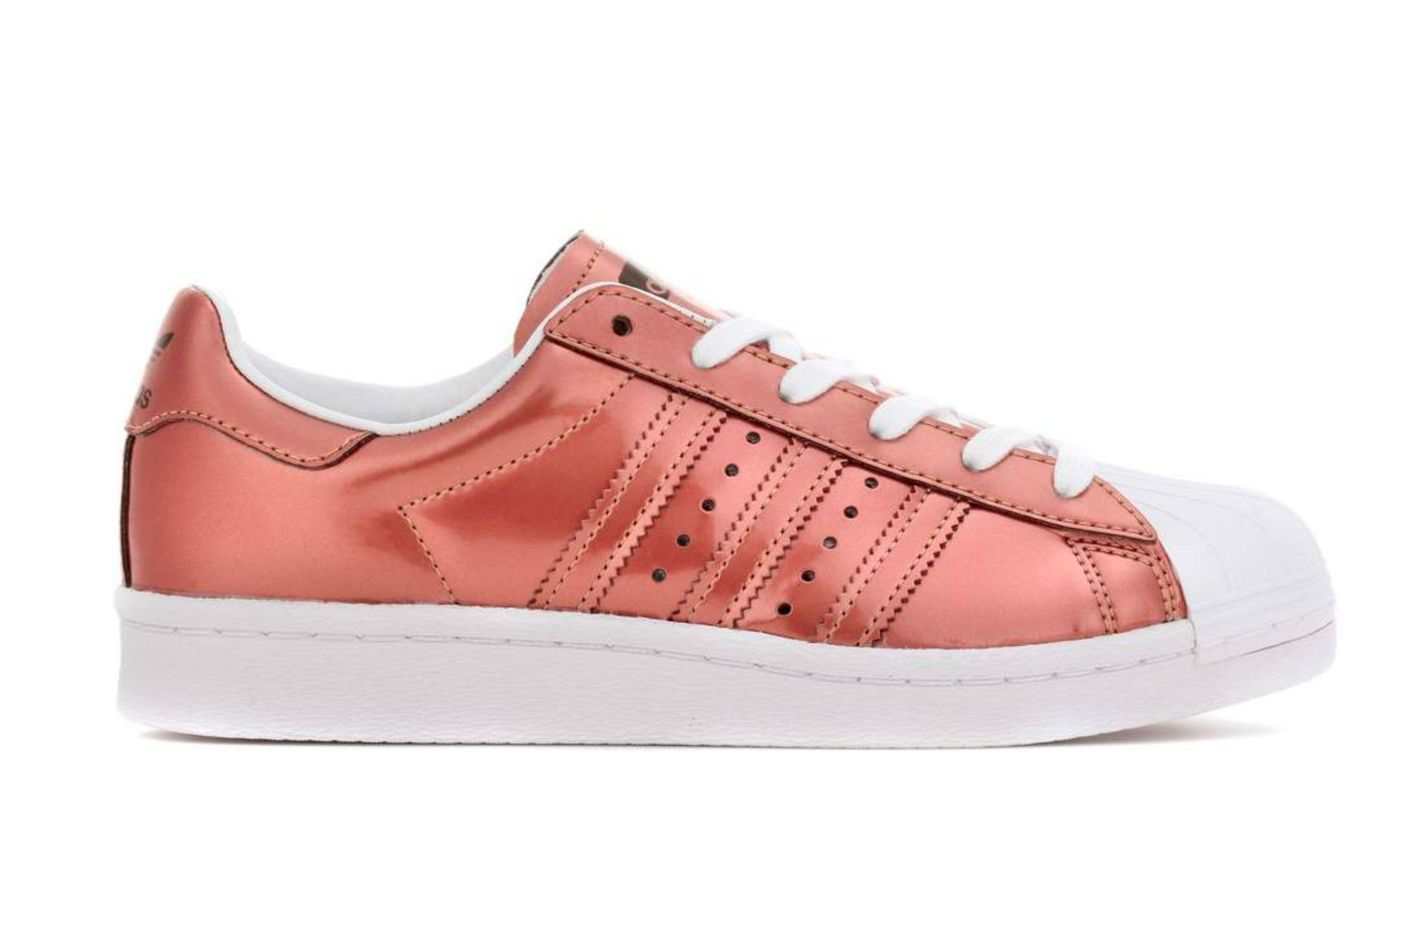 Adidas Originals Superstar Boost Sneakers